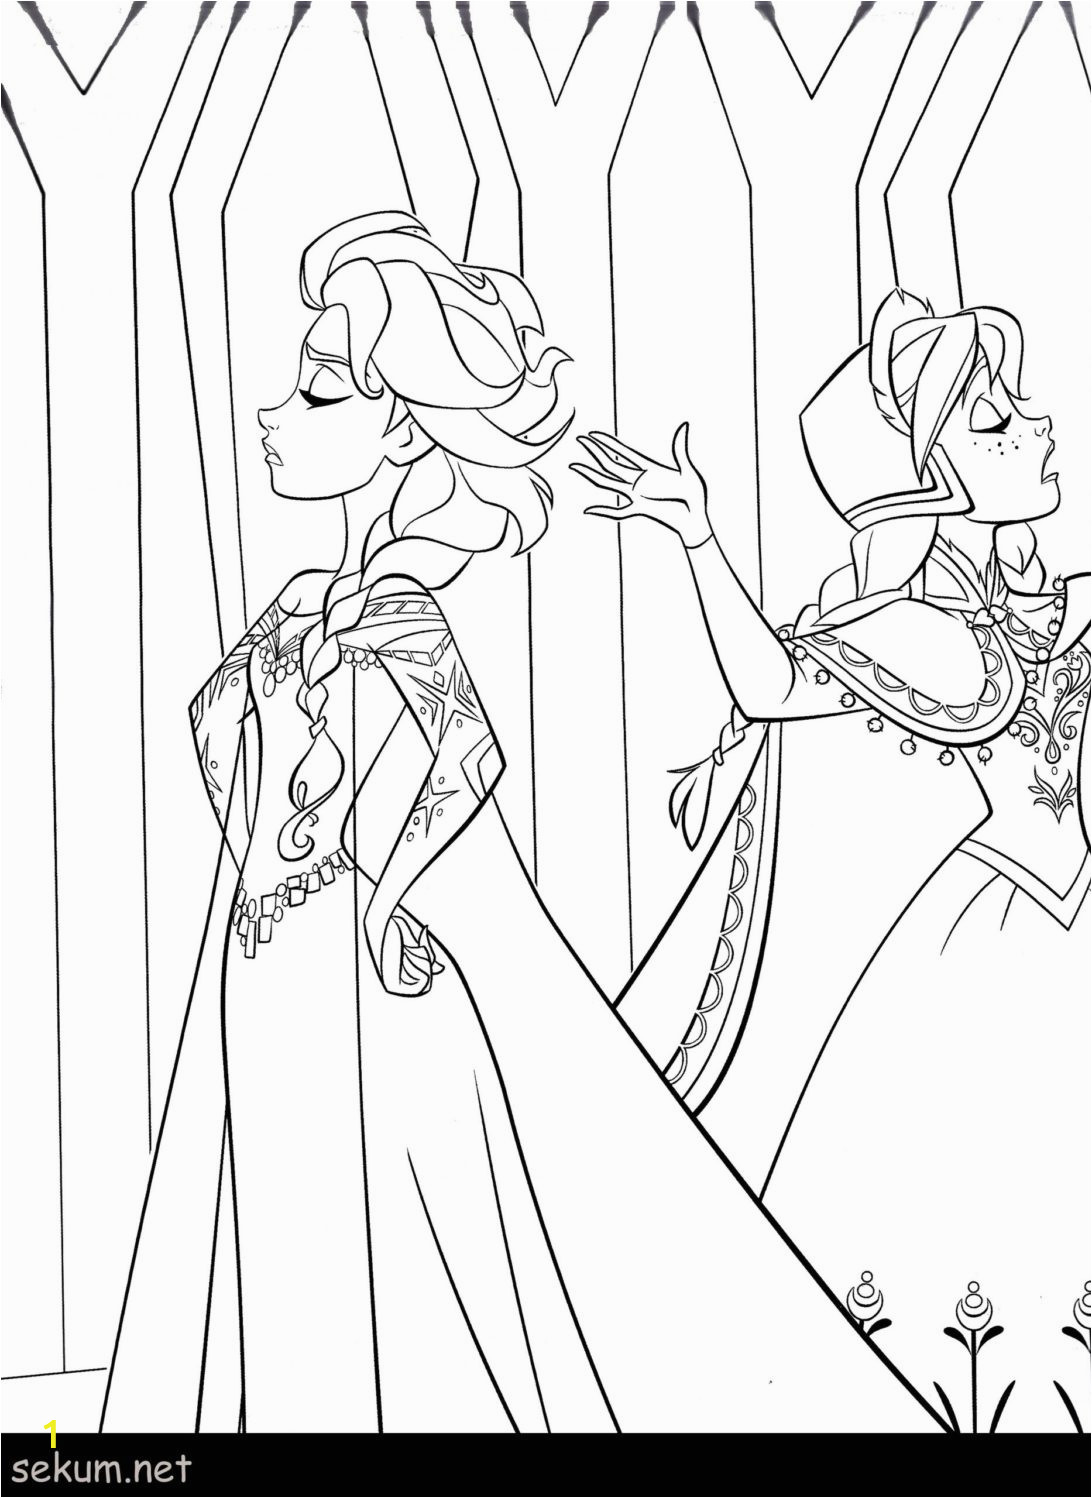 fabulous free printable frozen coloring pages ideas disneytle copy for kids elsa colouring to print disney castle and anna sheet sheets pictures printables princess 1092x1498